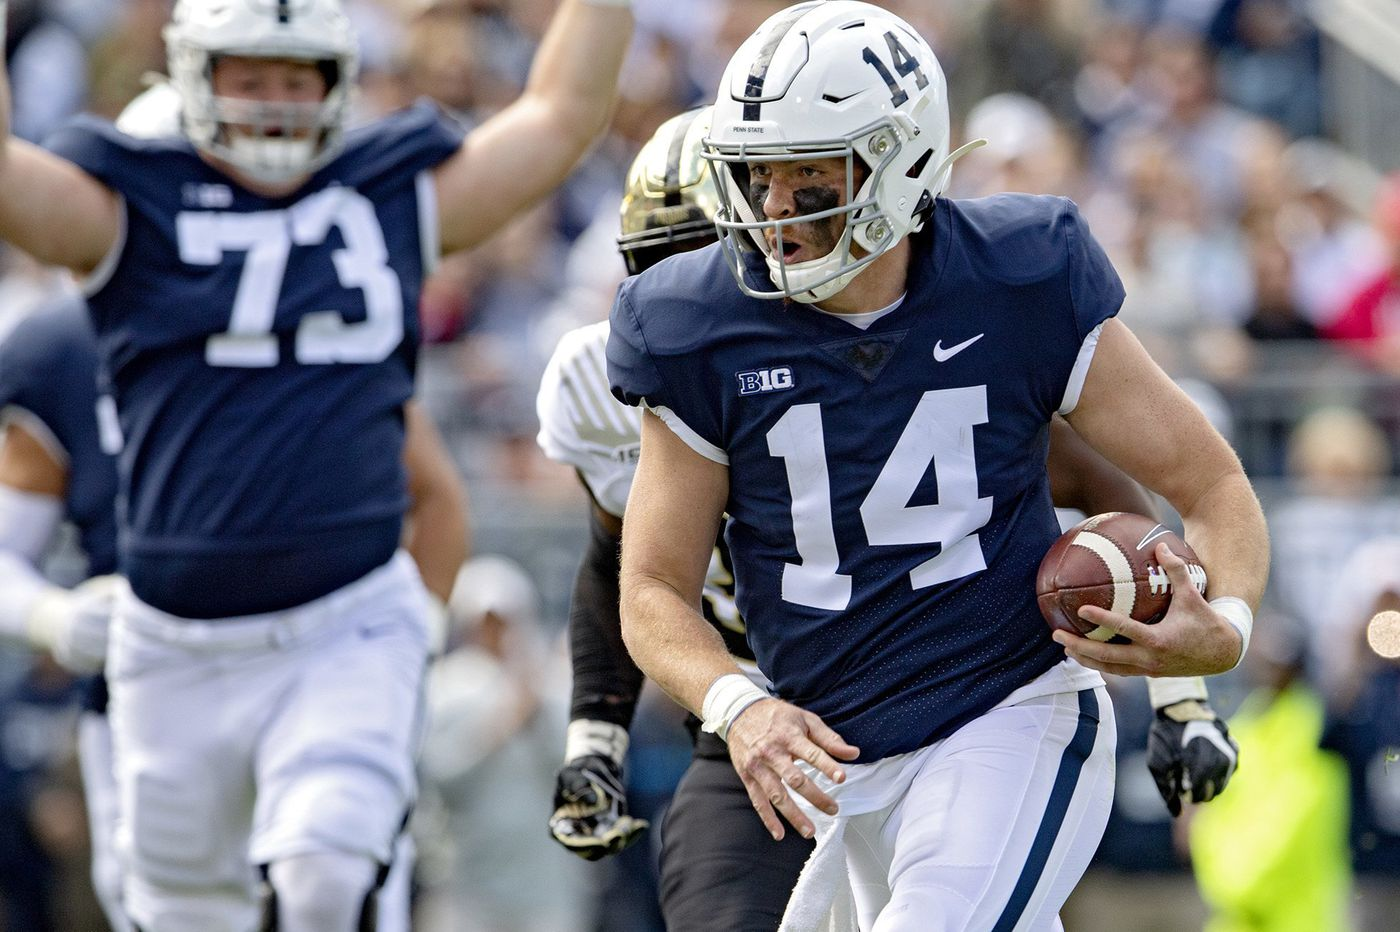 Penn State saw early success with two tight ends in win over Purdue